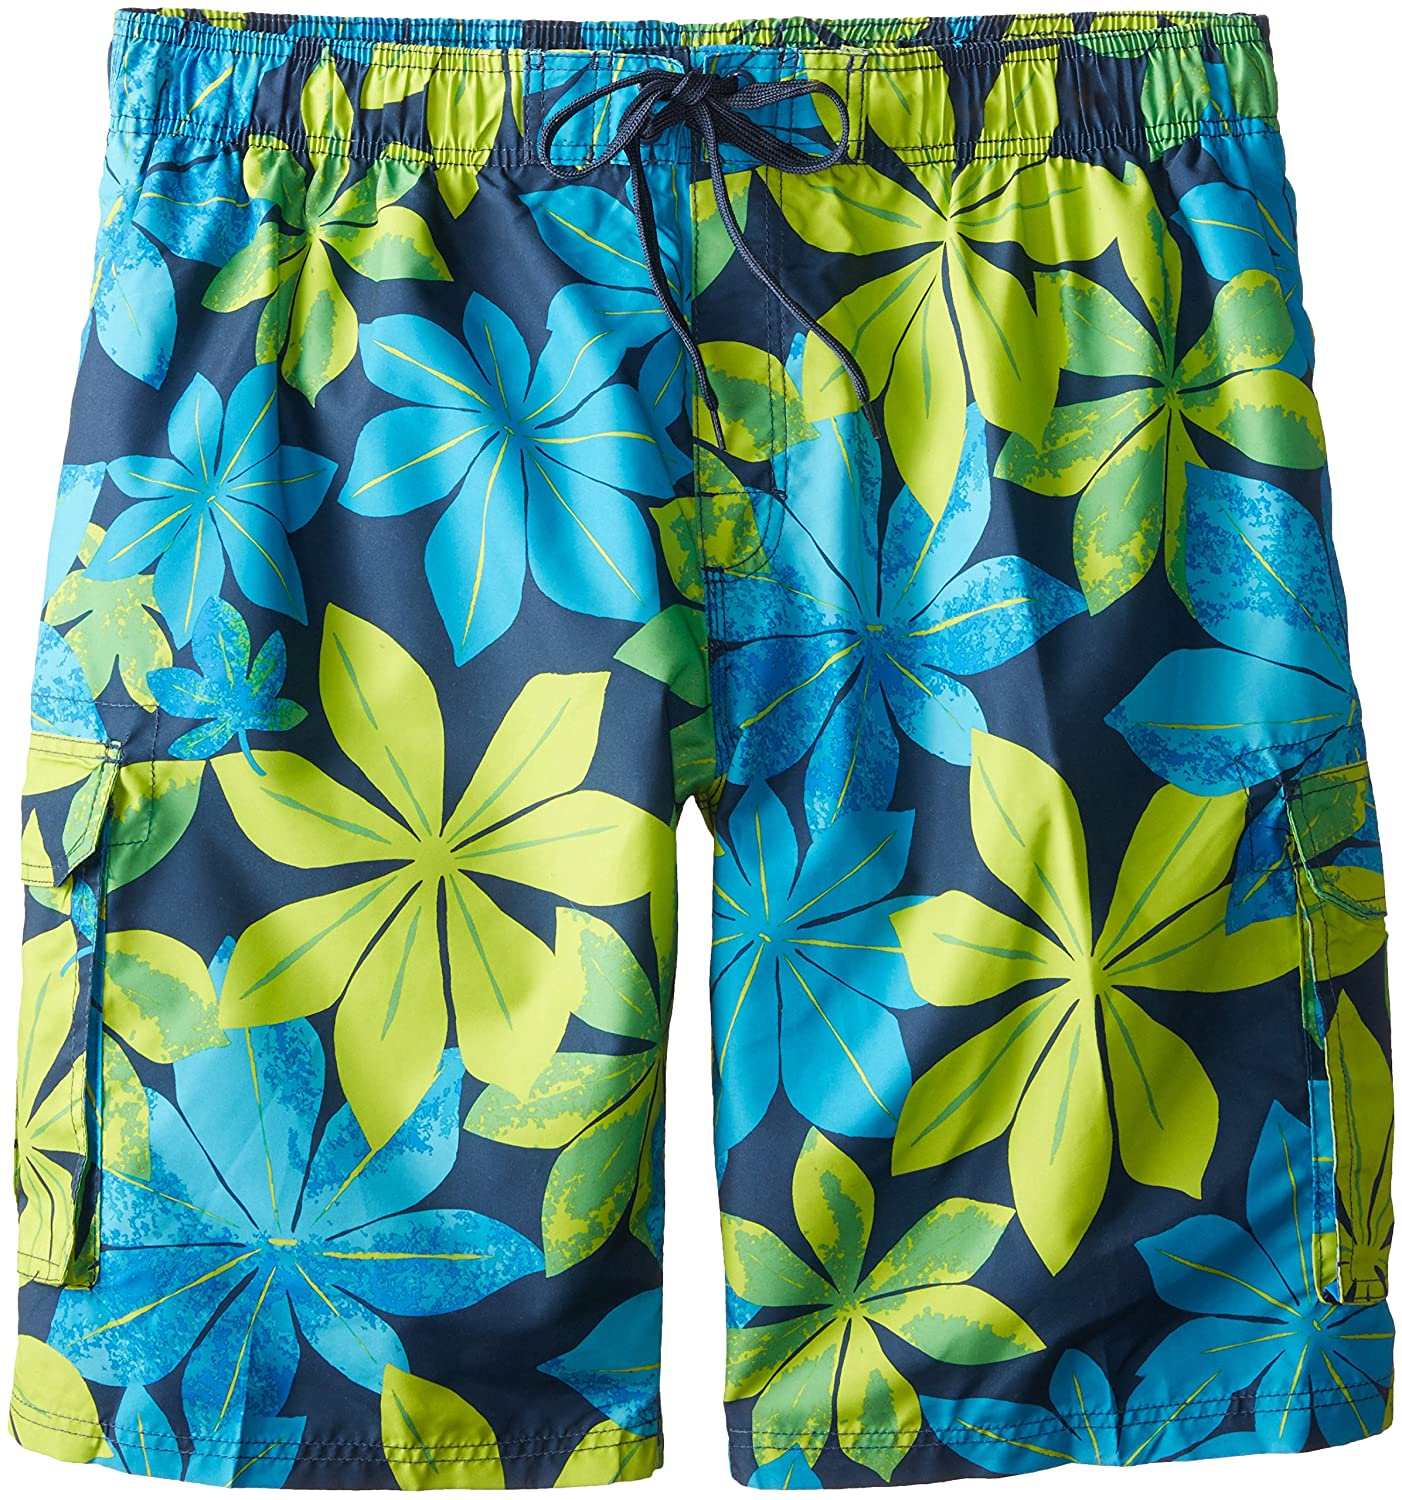 Kanu Surf Men's Big Pismo Extended-Size Swim Trunk Kanu Surf Men's Swimwear 2472X